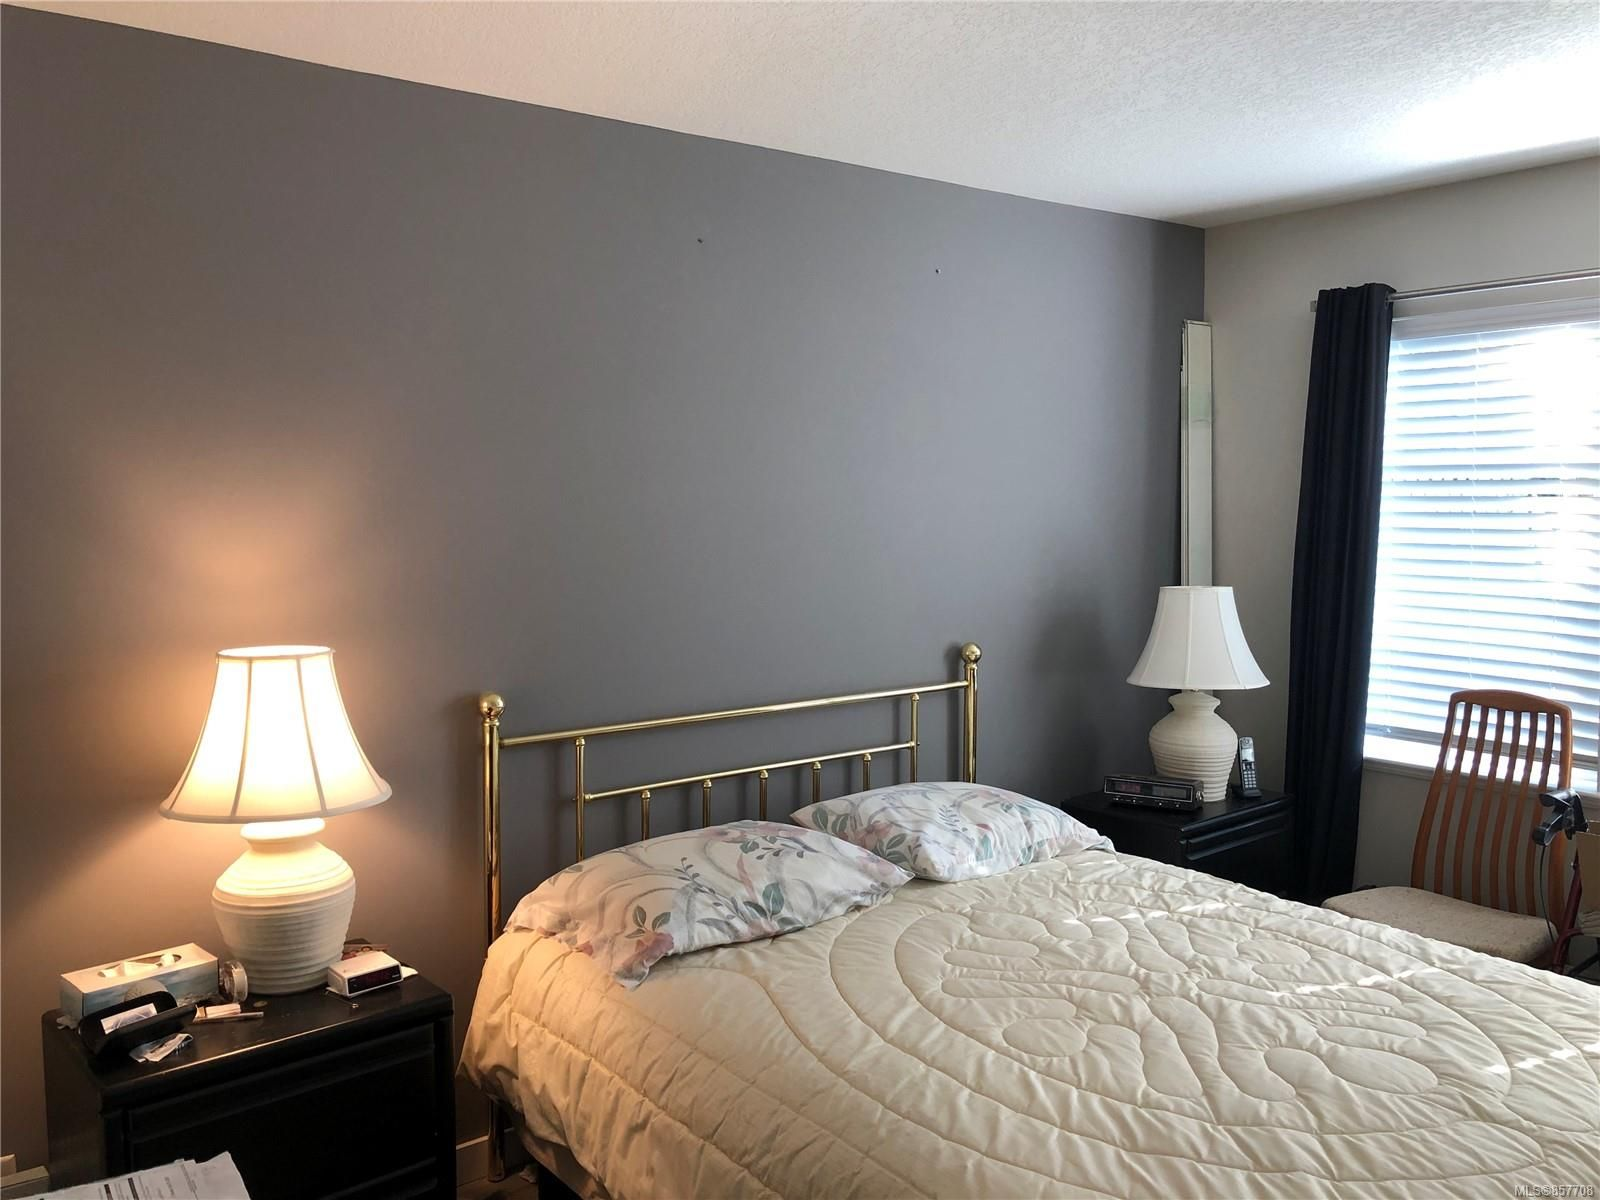 Photo 8: Photos: 6151 Bellflower Way in : Na North Nanaimo Row/Townhouse for sale (Nanaimo)  : MLS®# 857708